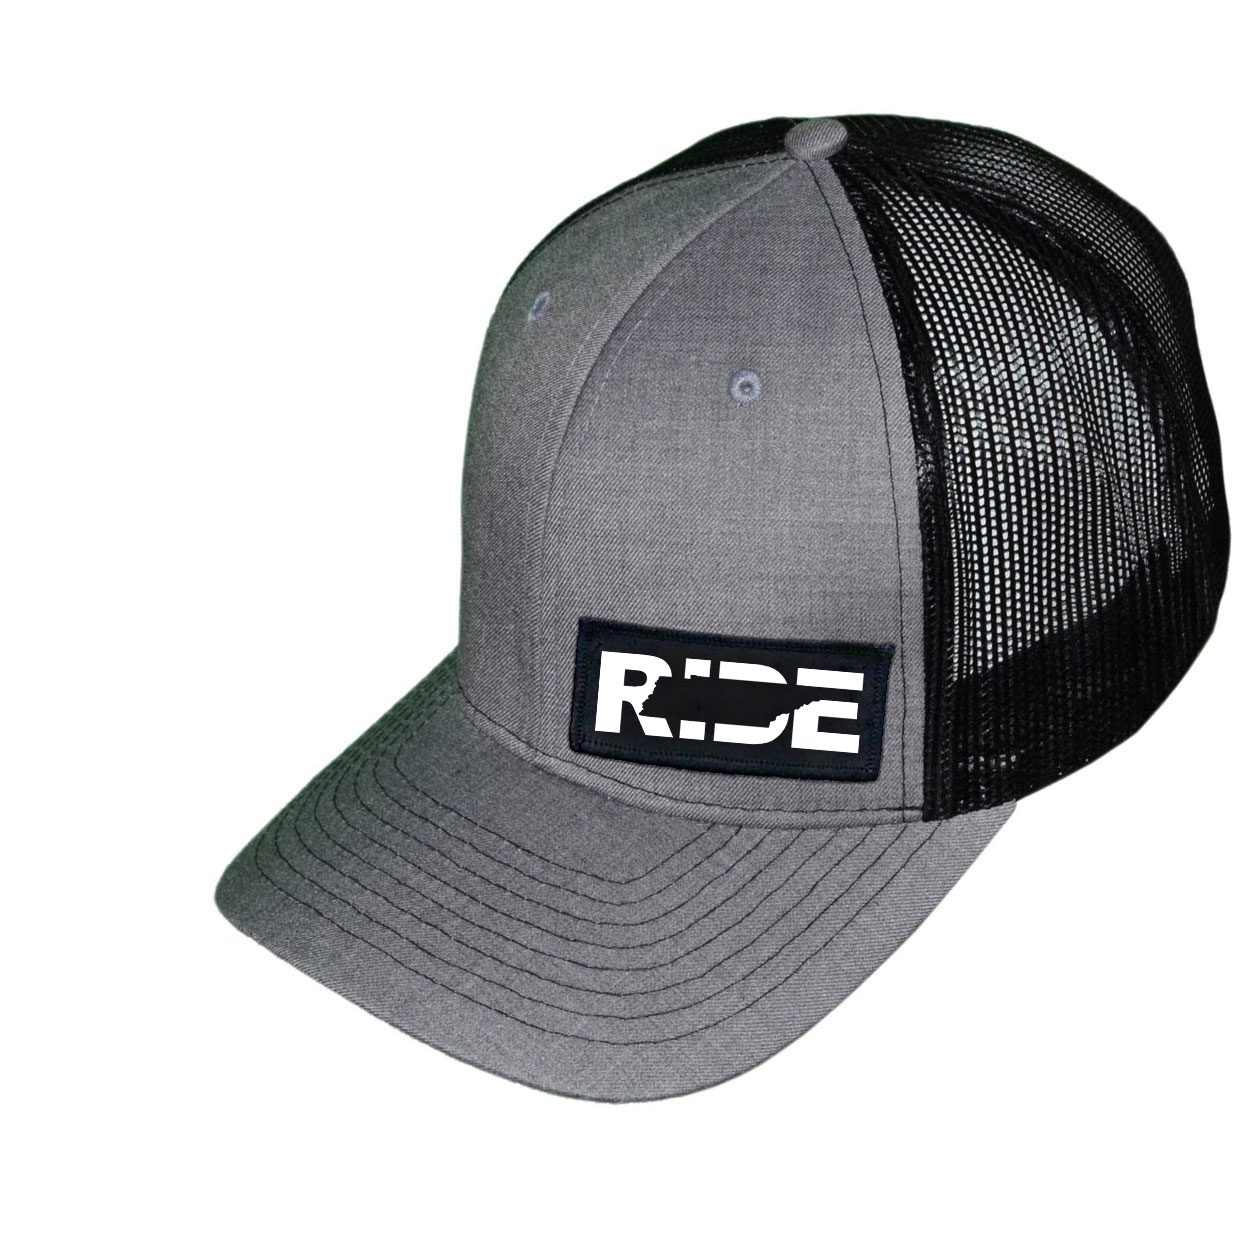 Ride Tennessee Night Out Woven Patch Snapback Trucker Hat Heather Gray/Black (White Logo)